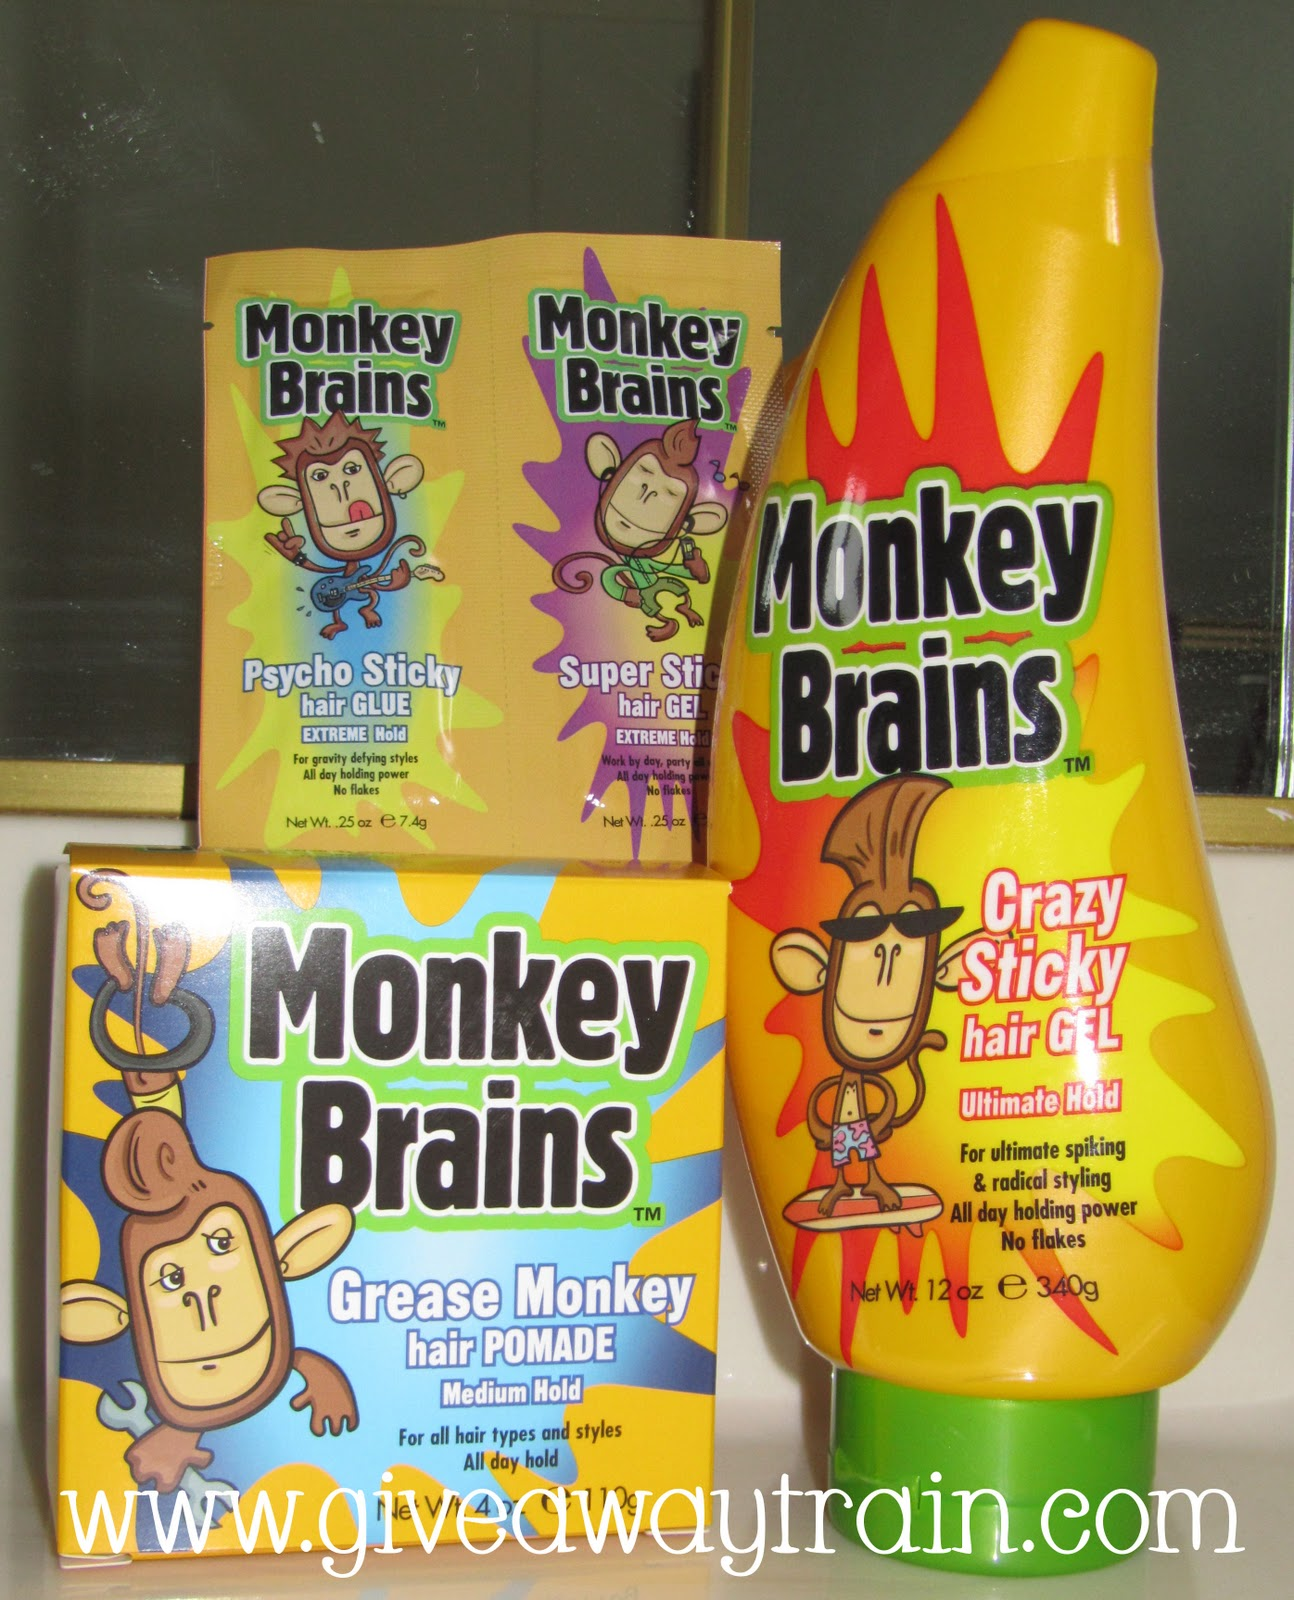 Every Product In The Monkey Brains Collection Contains Premium Ings Are Alcohol Free And Only 3 99 Each Affordable For Even Tweens To With